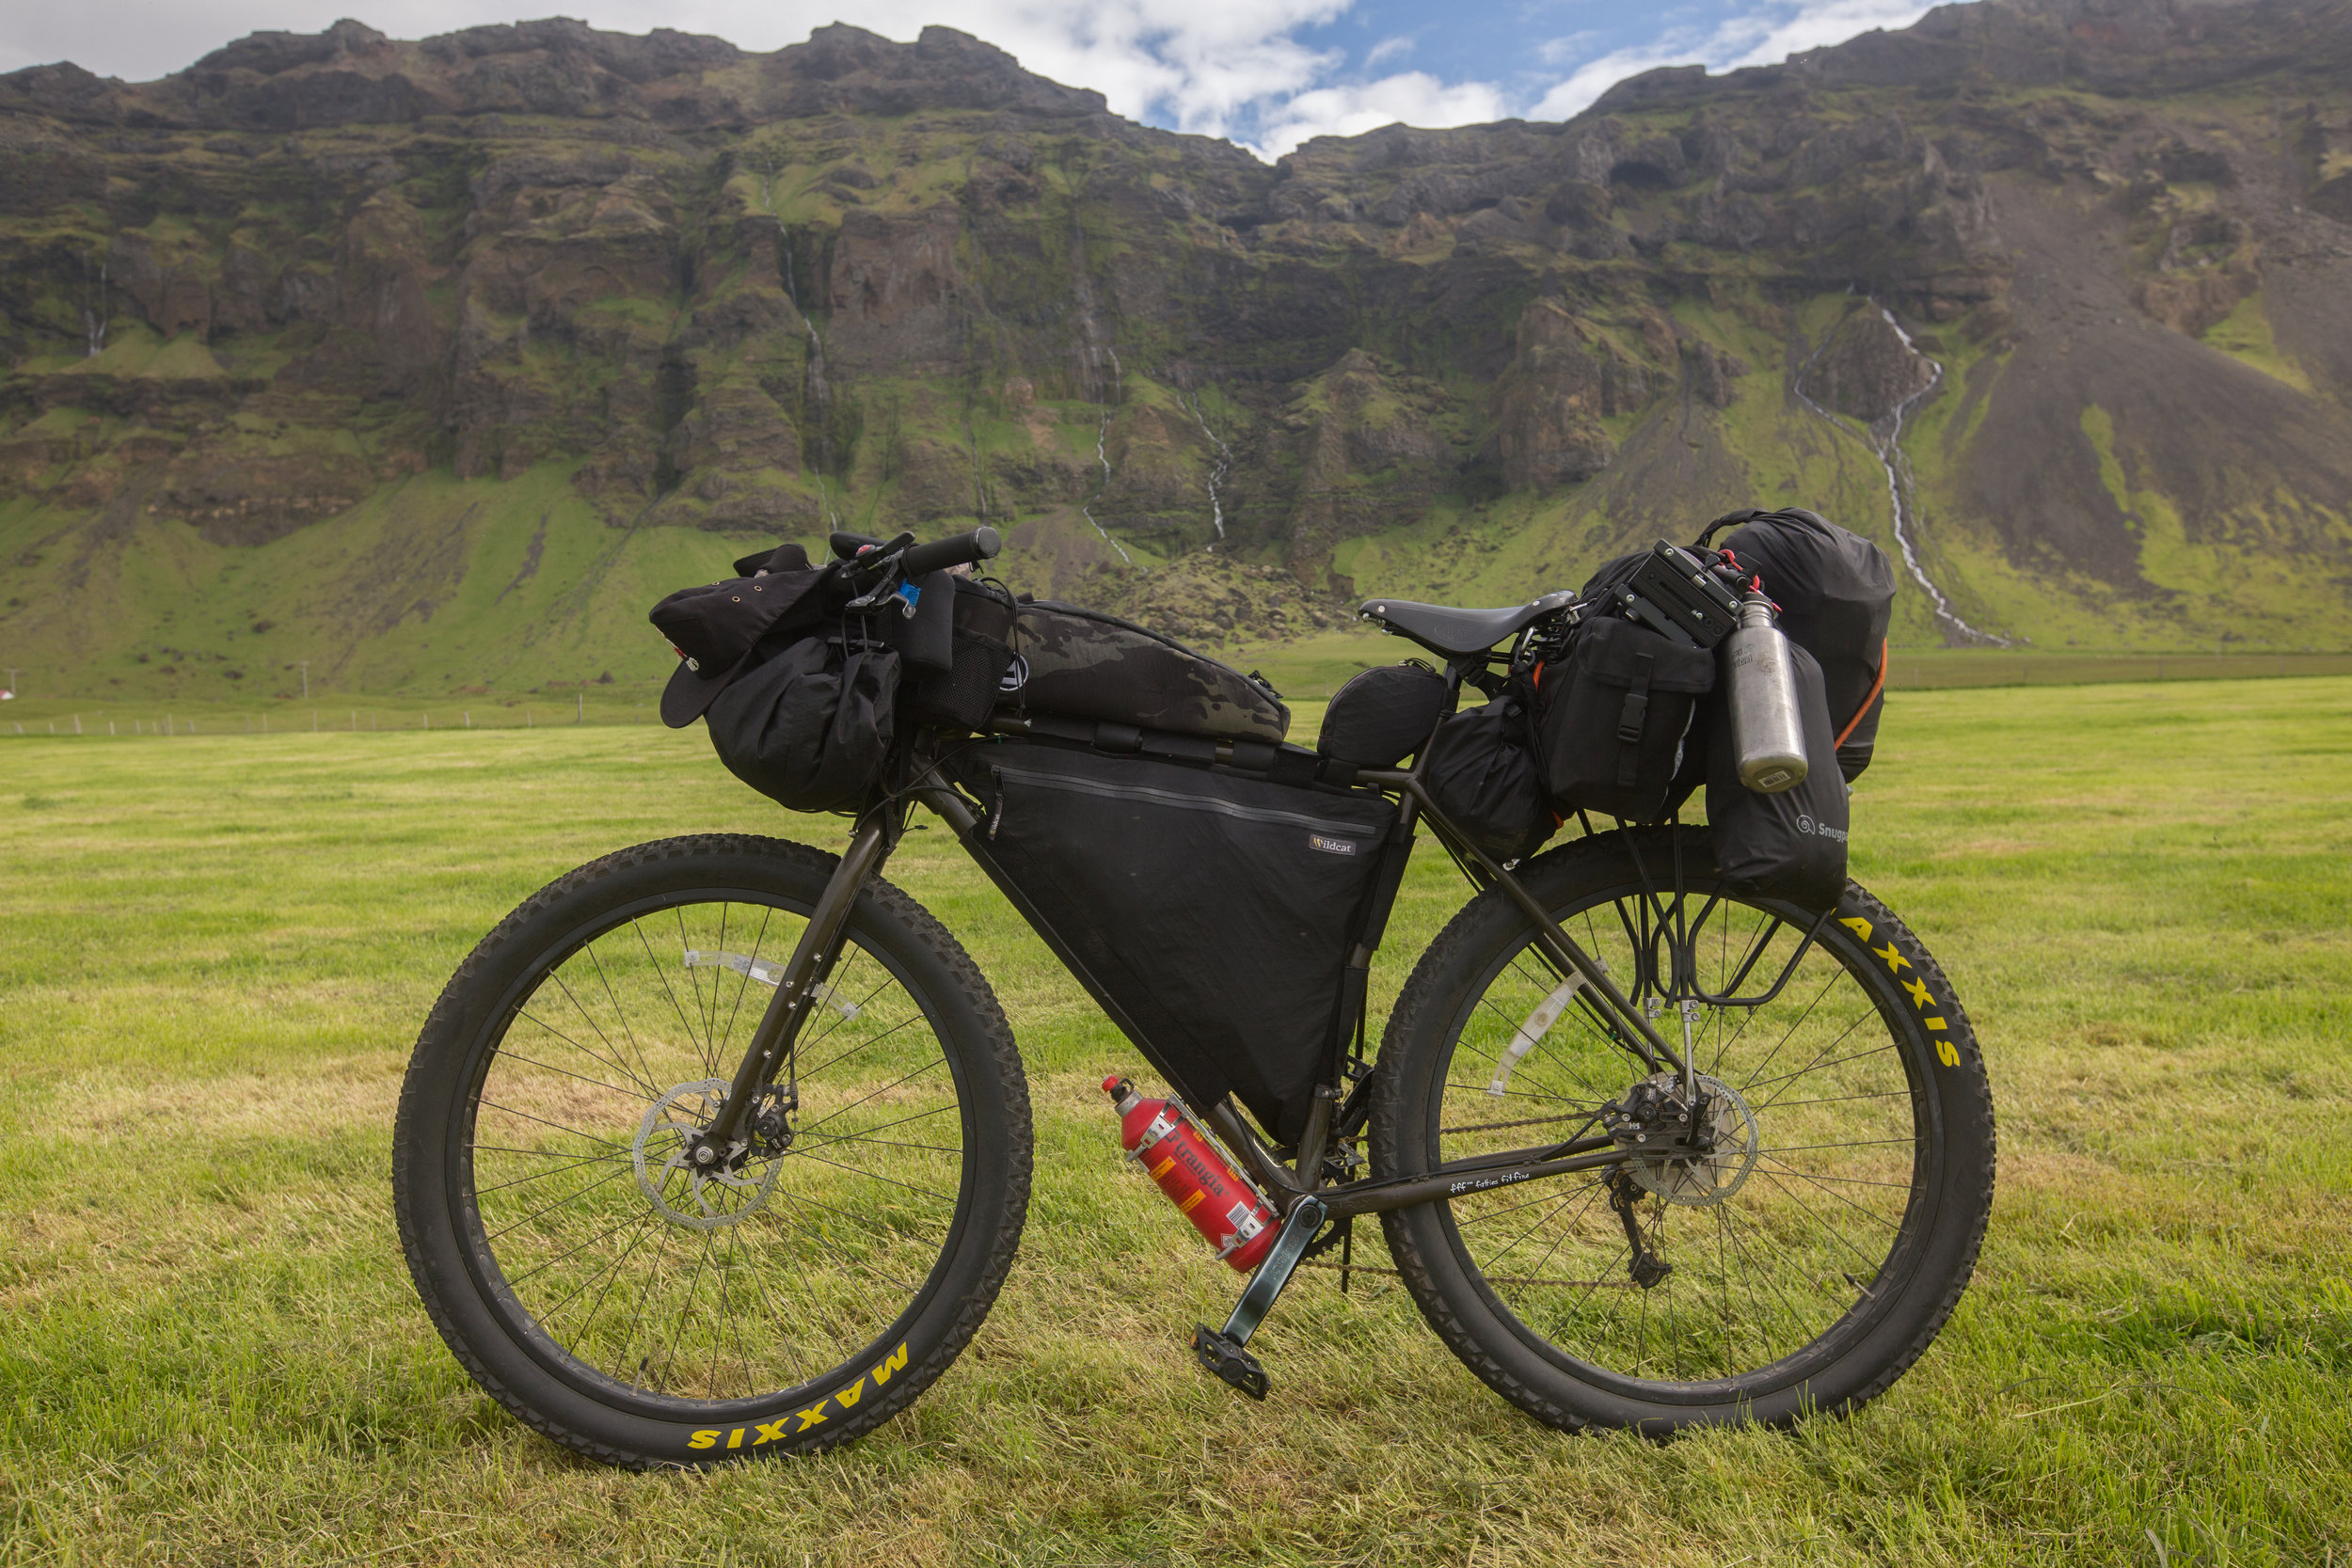 bikepacking, bikepacking blog, bicycle touring, bicycle touring blog, van life, jack mac, jack macgowan, cycling, bicycle, surly, surly bikes, iceland, bikepacking iceland, cycling icealnd, 29er, fat bike, steel frame, bikepacking gear, blog, travel writer, bicycle touring apocalypse